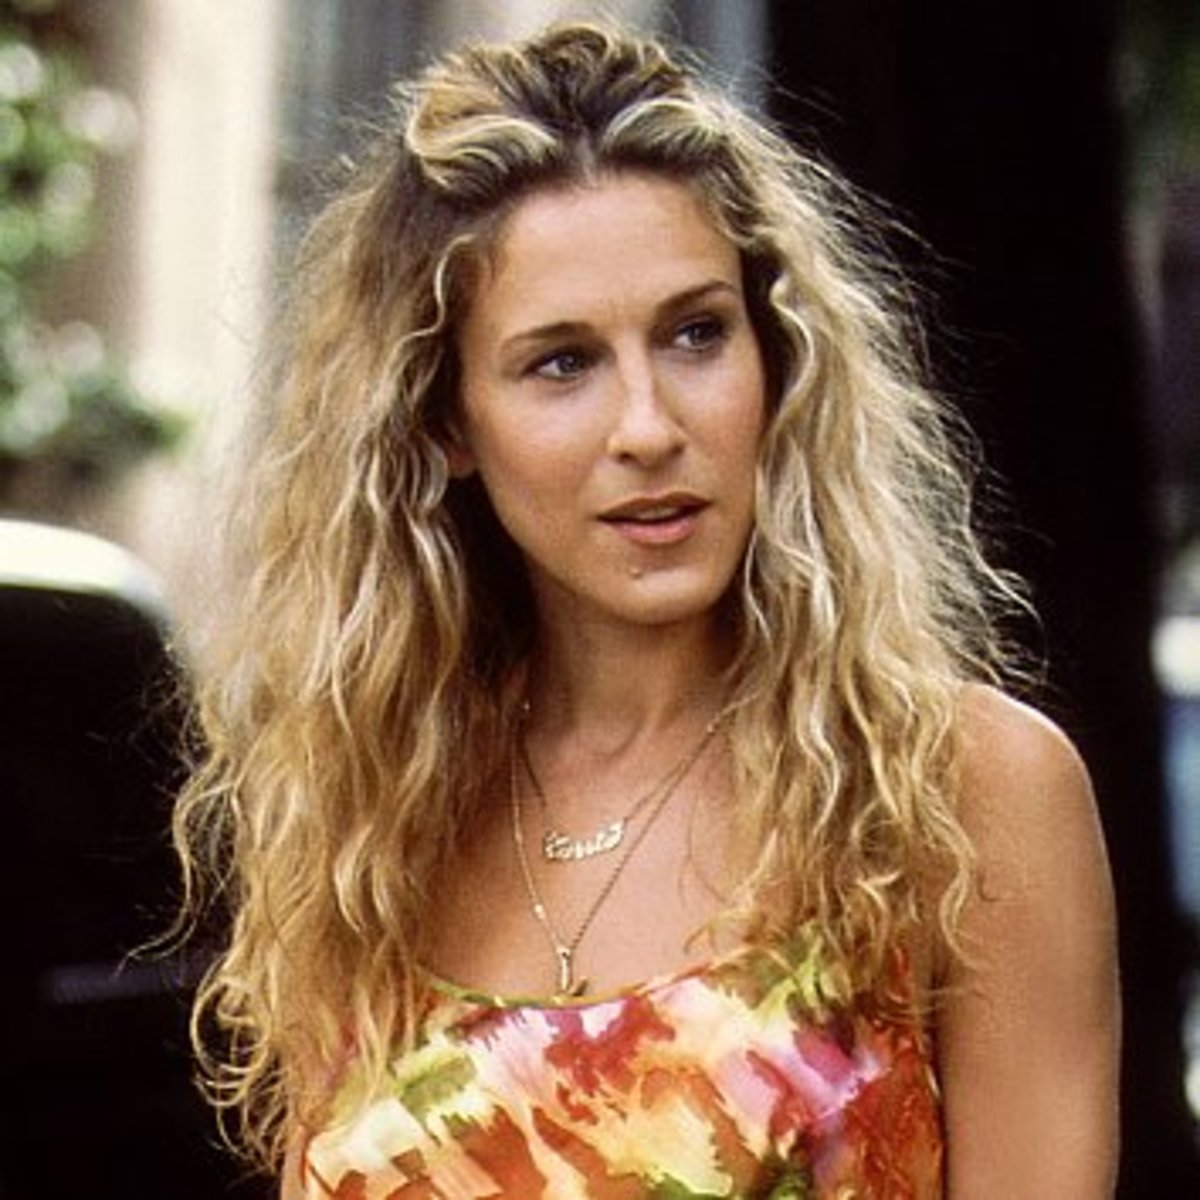 The Hair Volution Of Carrie Bradshaw From Sex And The City